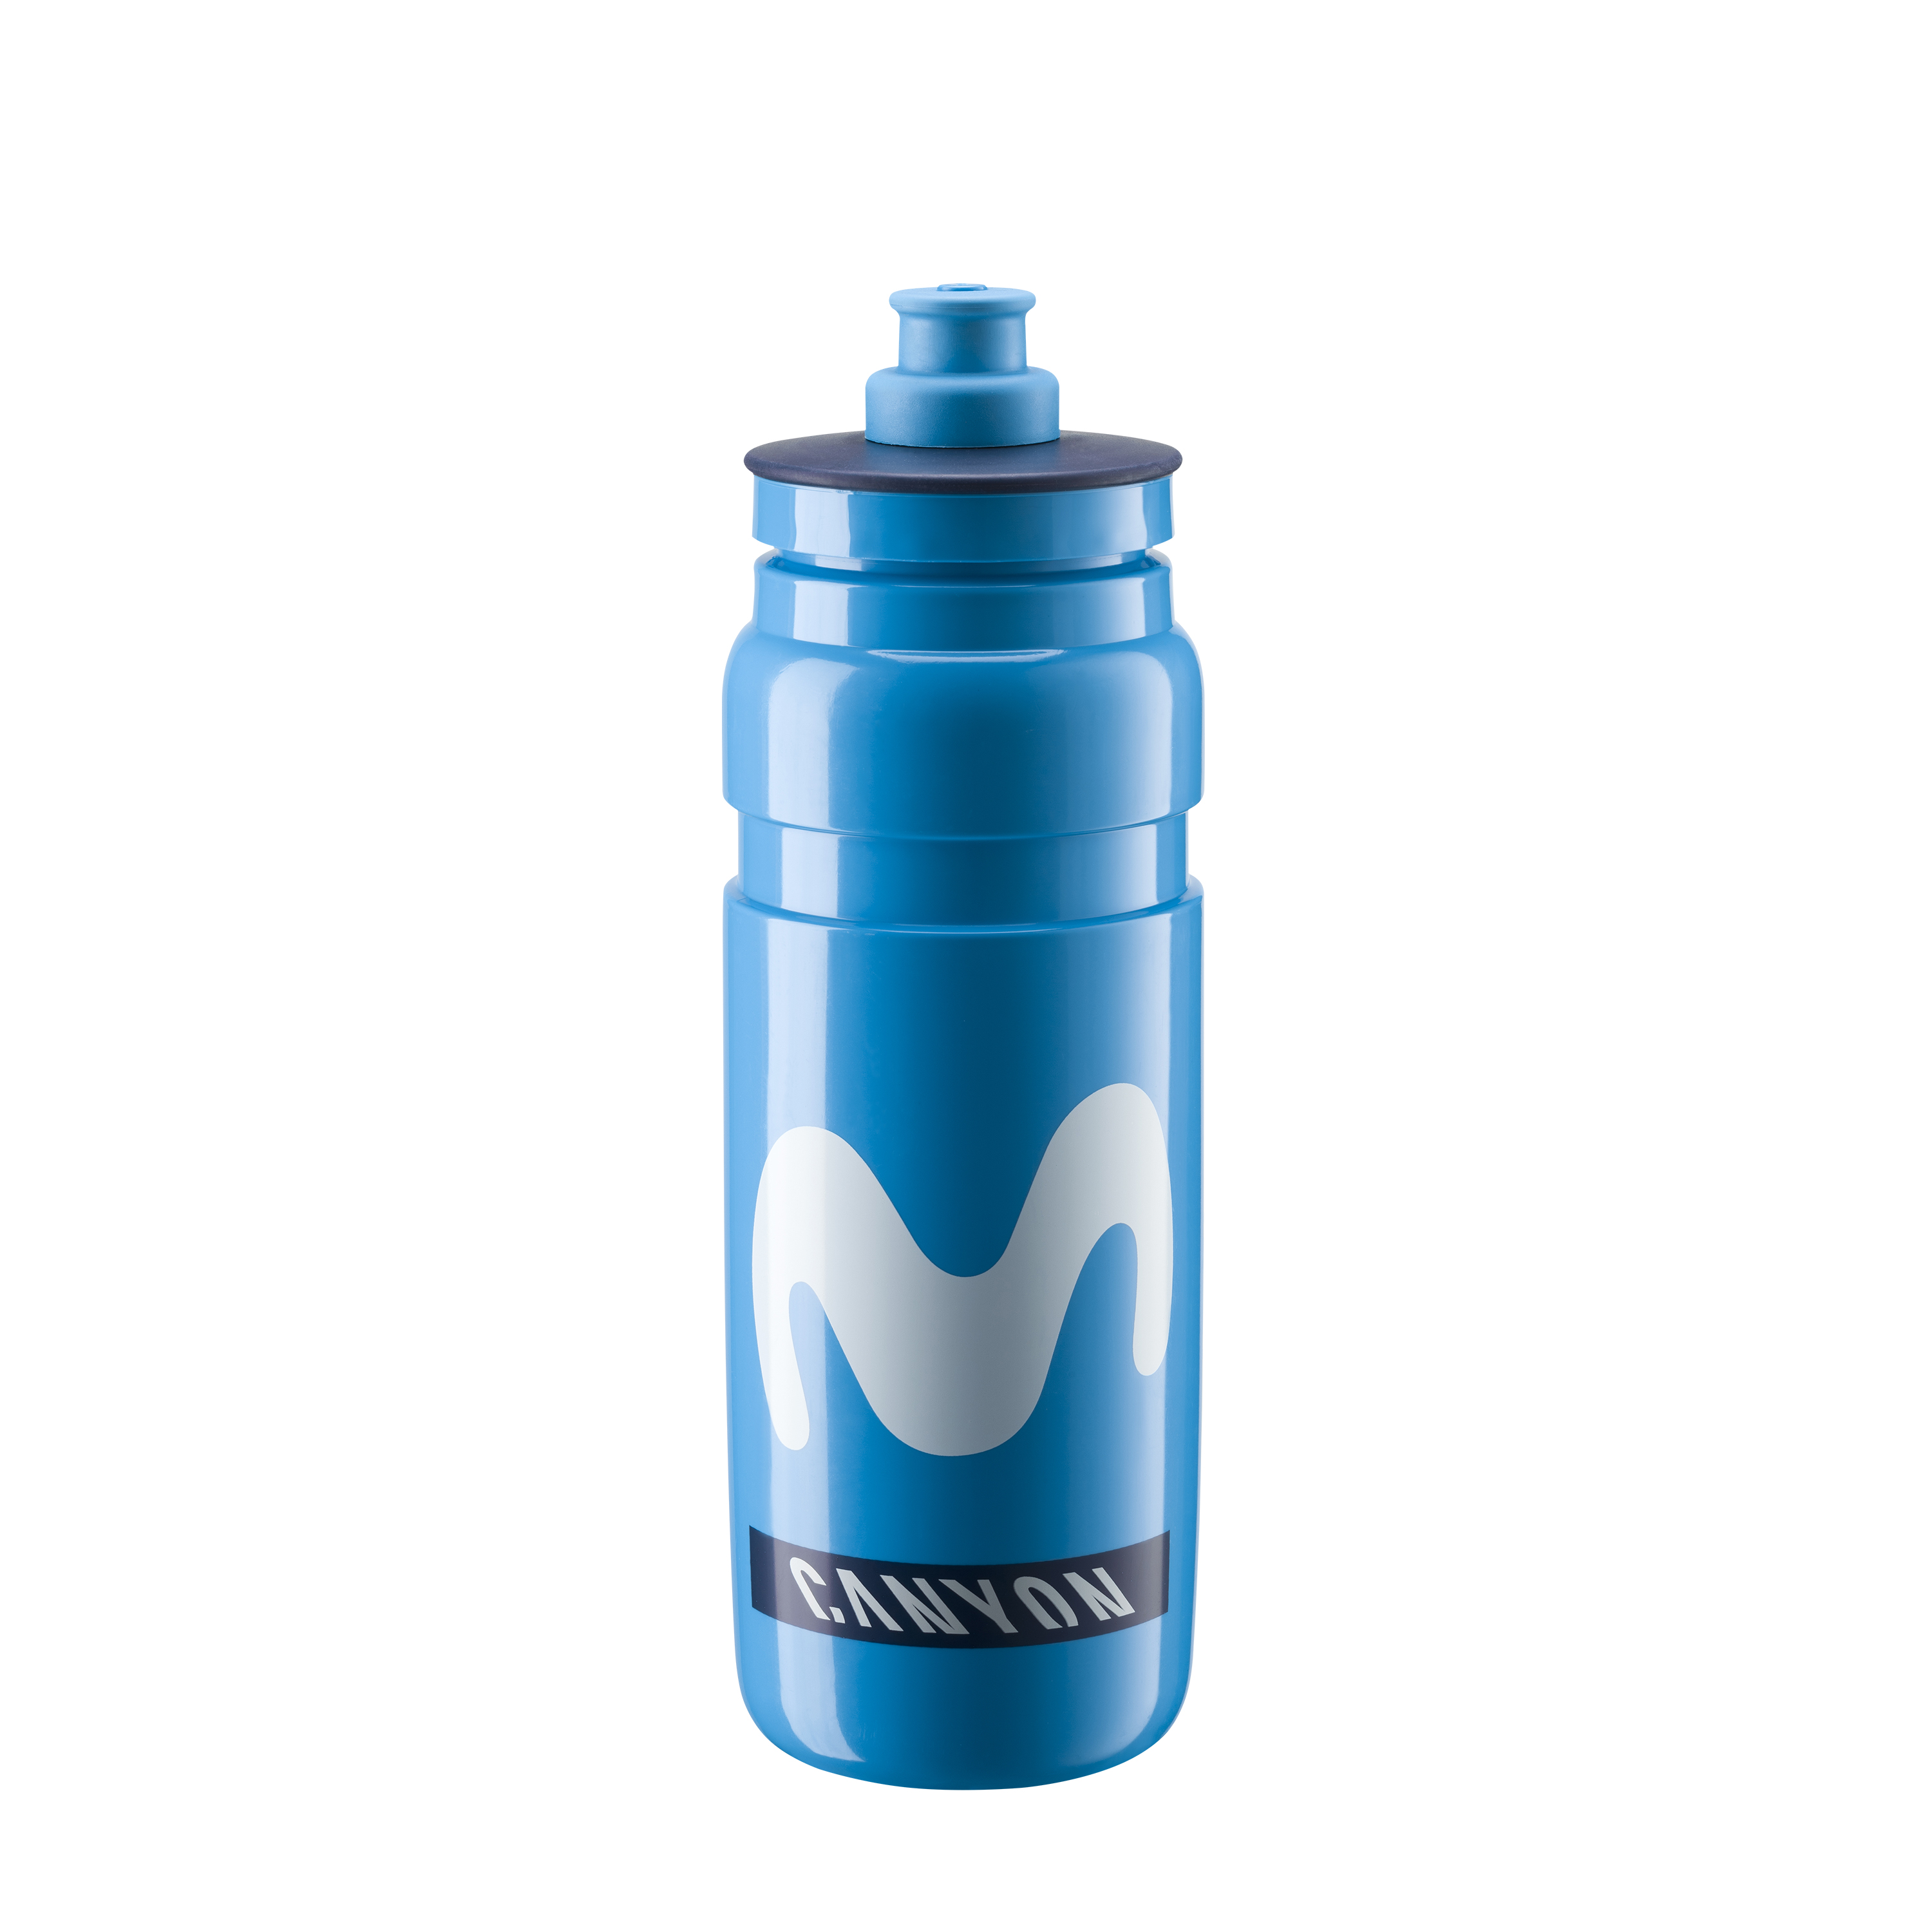 ELITE láhev FLY TEAM MOVISTAR, 750 ml